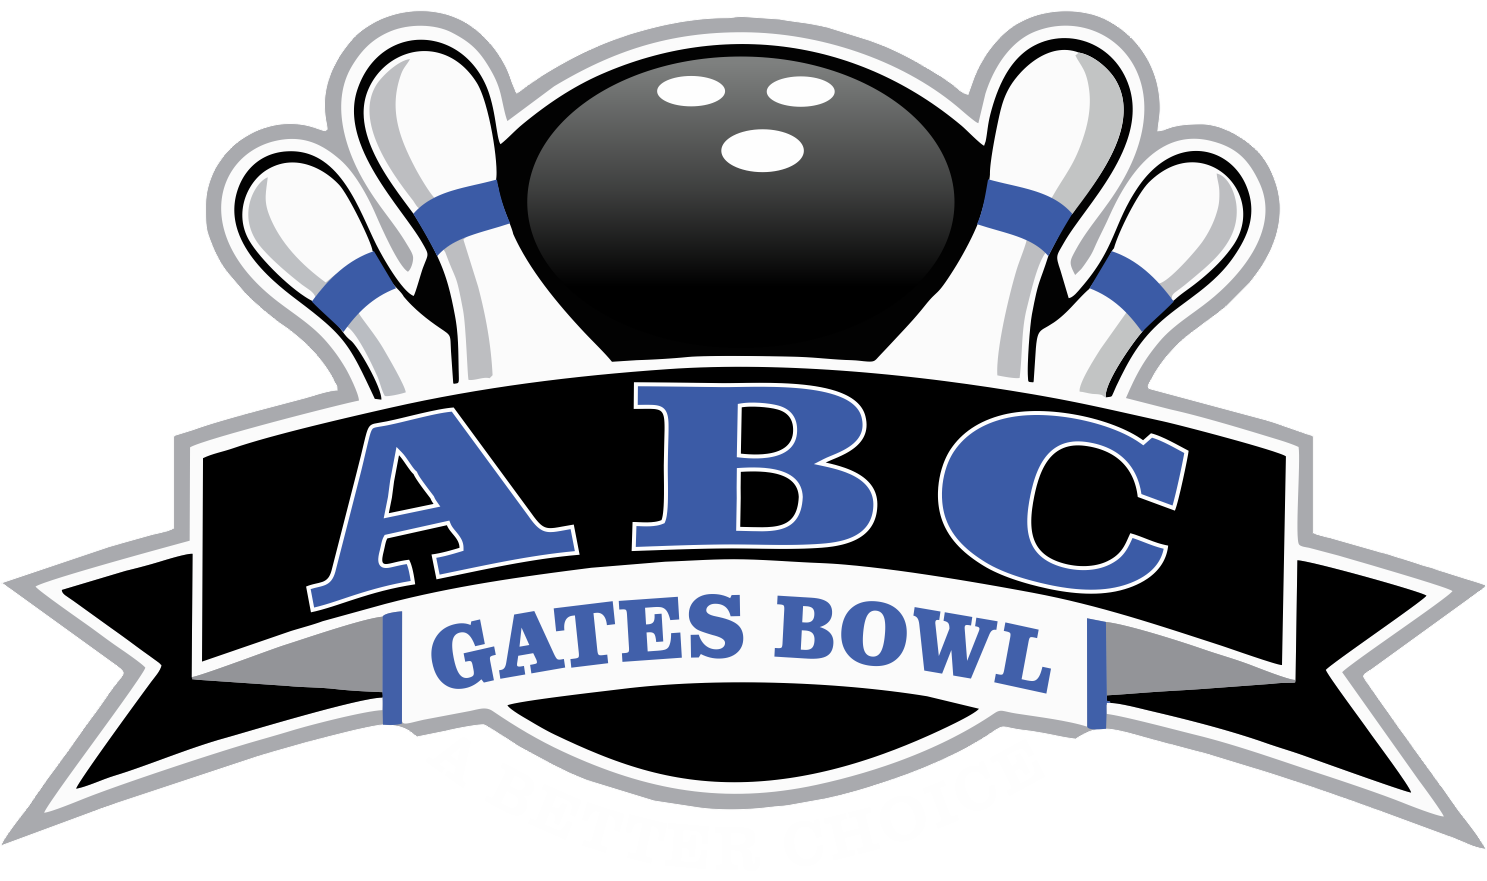 ABC Gates Bowl